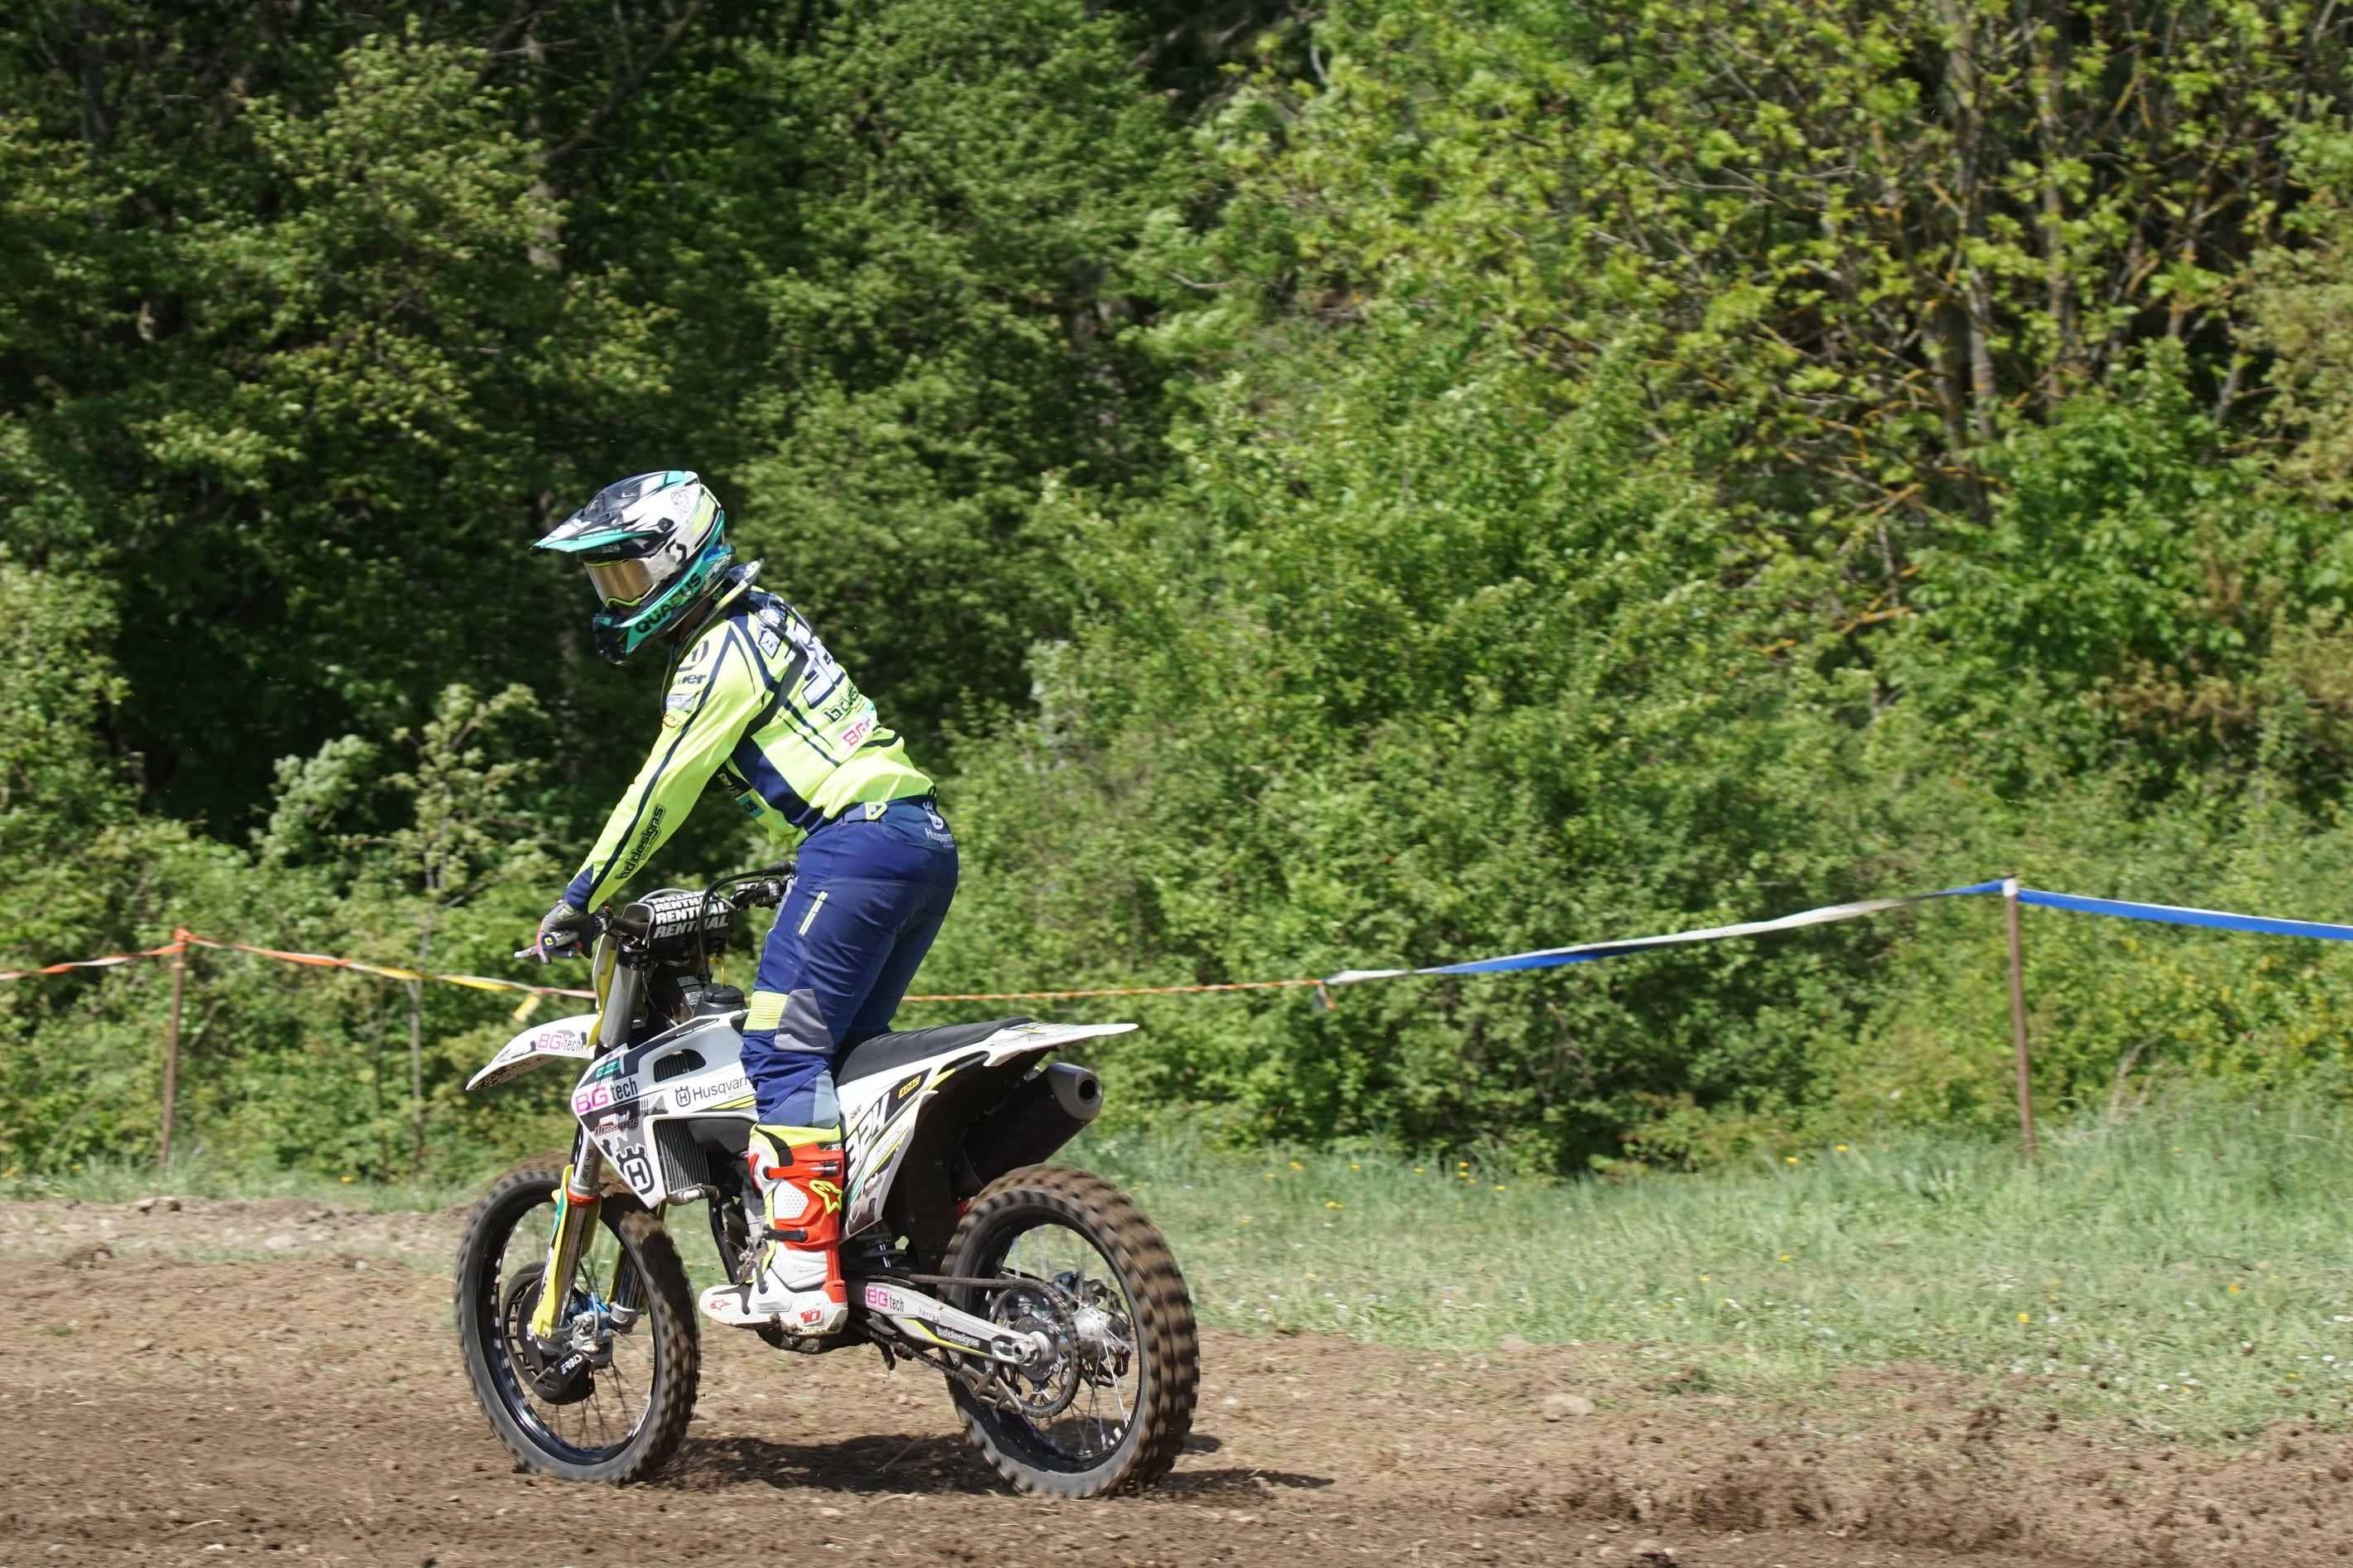 DSC 202_Moto Cross Sittendorf Teil1 am 29.04.2018